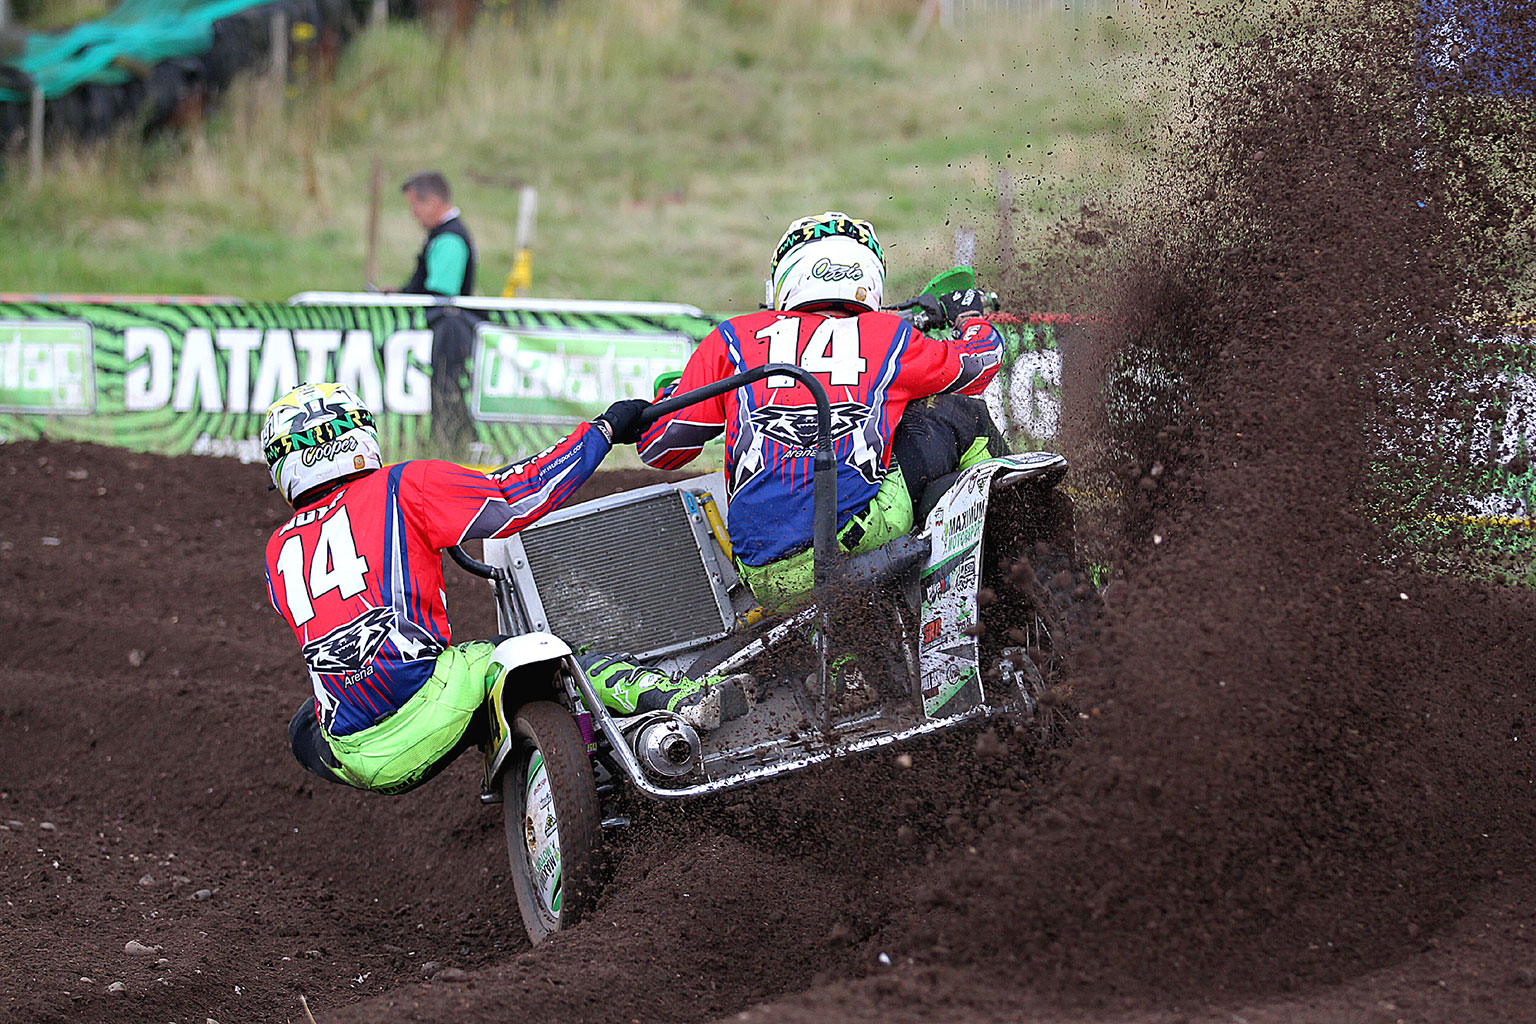 Sam-Osbaldiston-and-Nathan-Cooper-in-IMBA-Sidecar-action